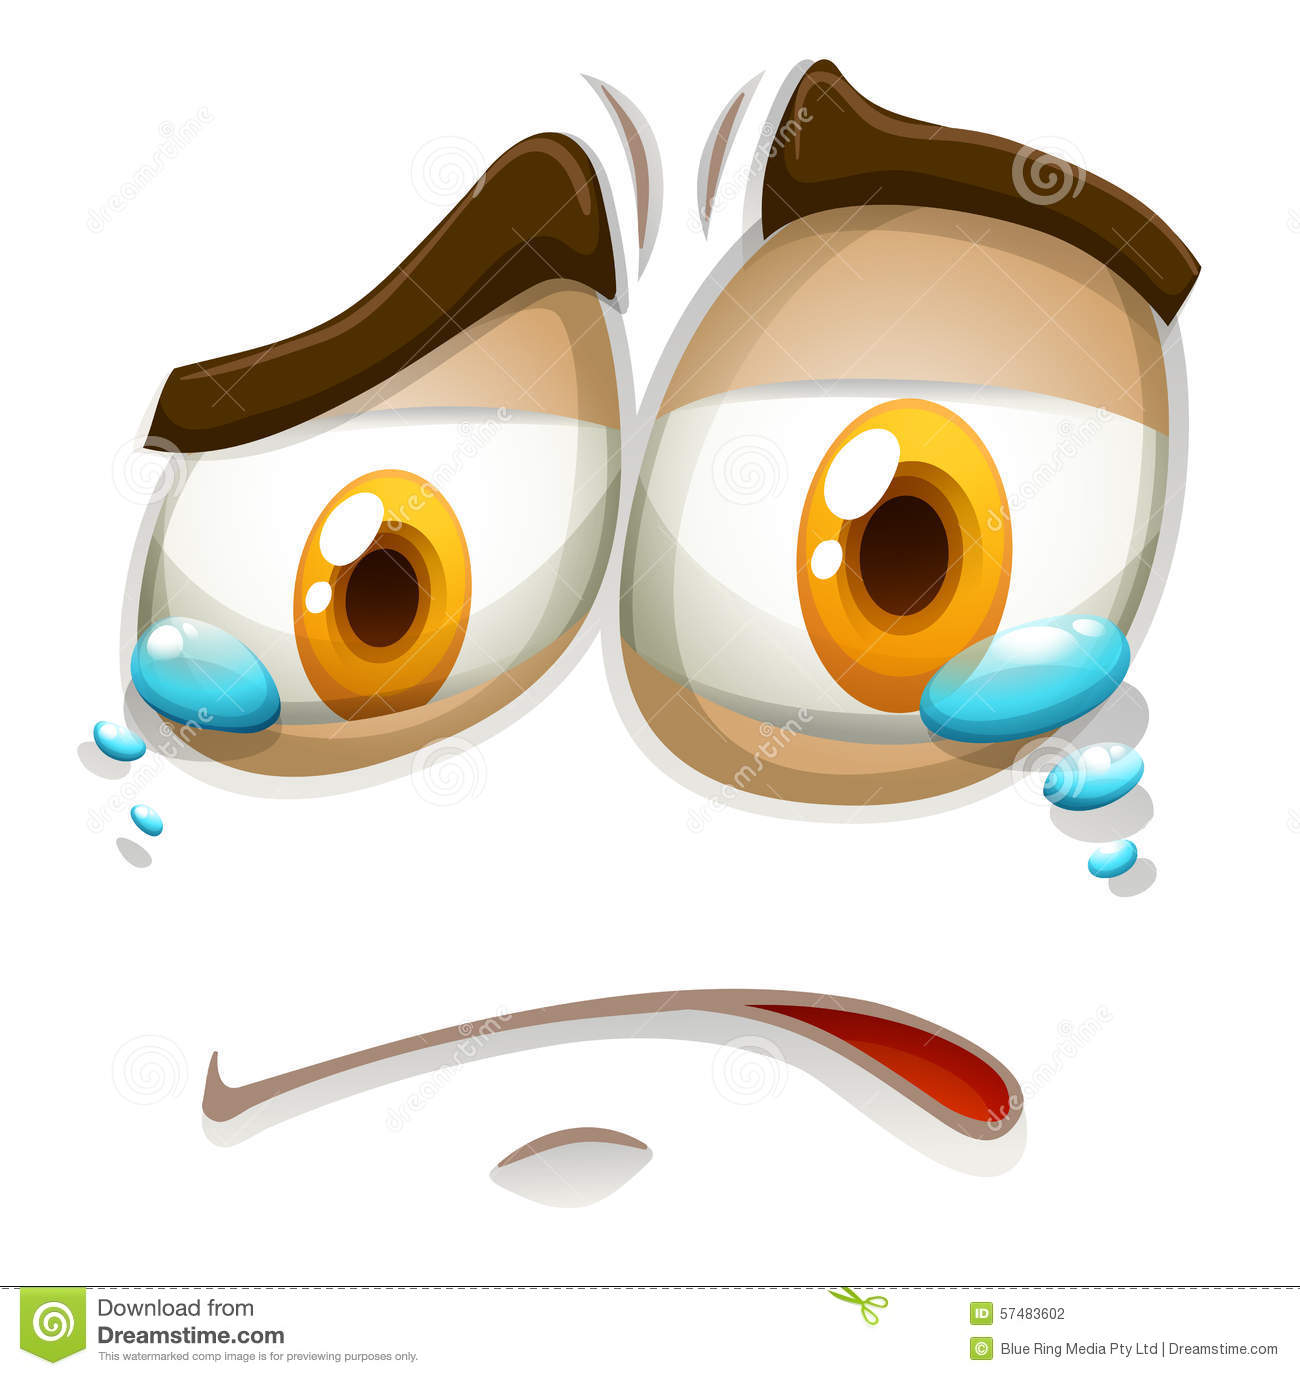 Sad Face With Tears Stock Vector. Illustration Of